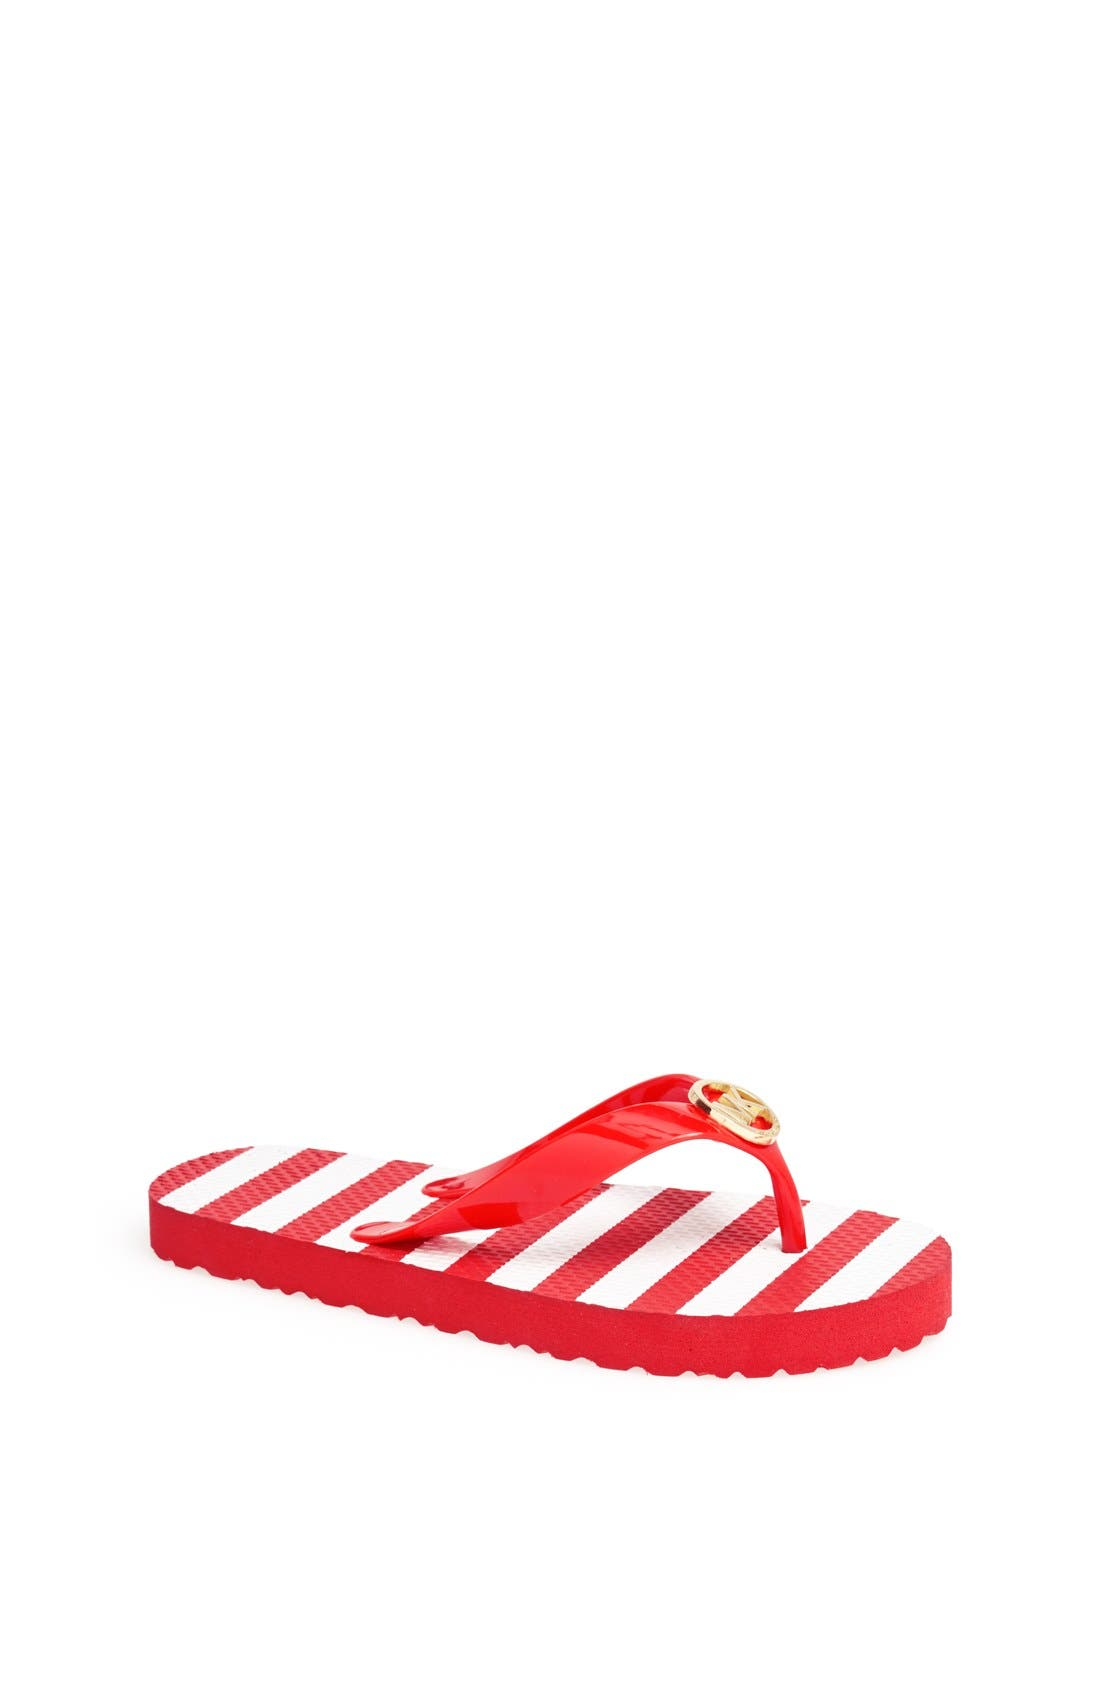 Alternate Image 1 Selected - MICHAEL Michael Kors 'Endine' Flip Flop (Toddler, Little Kid & Big Kid)